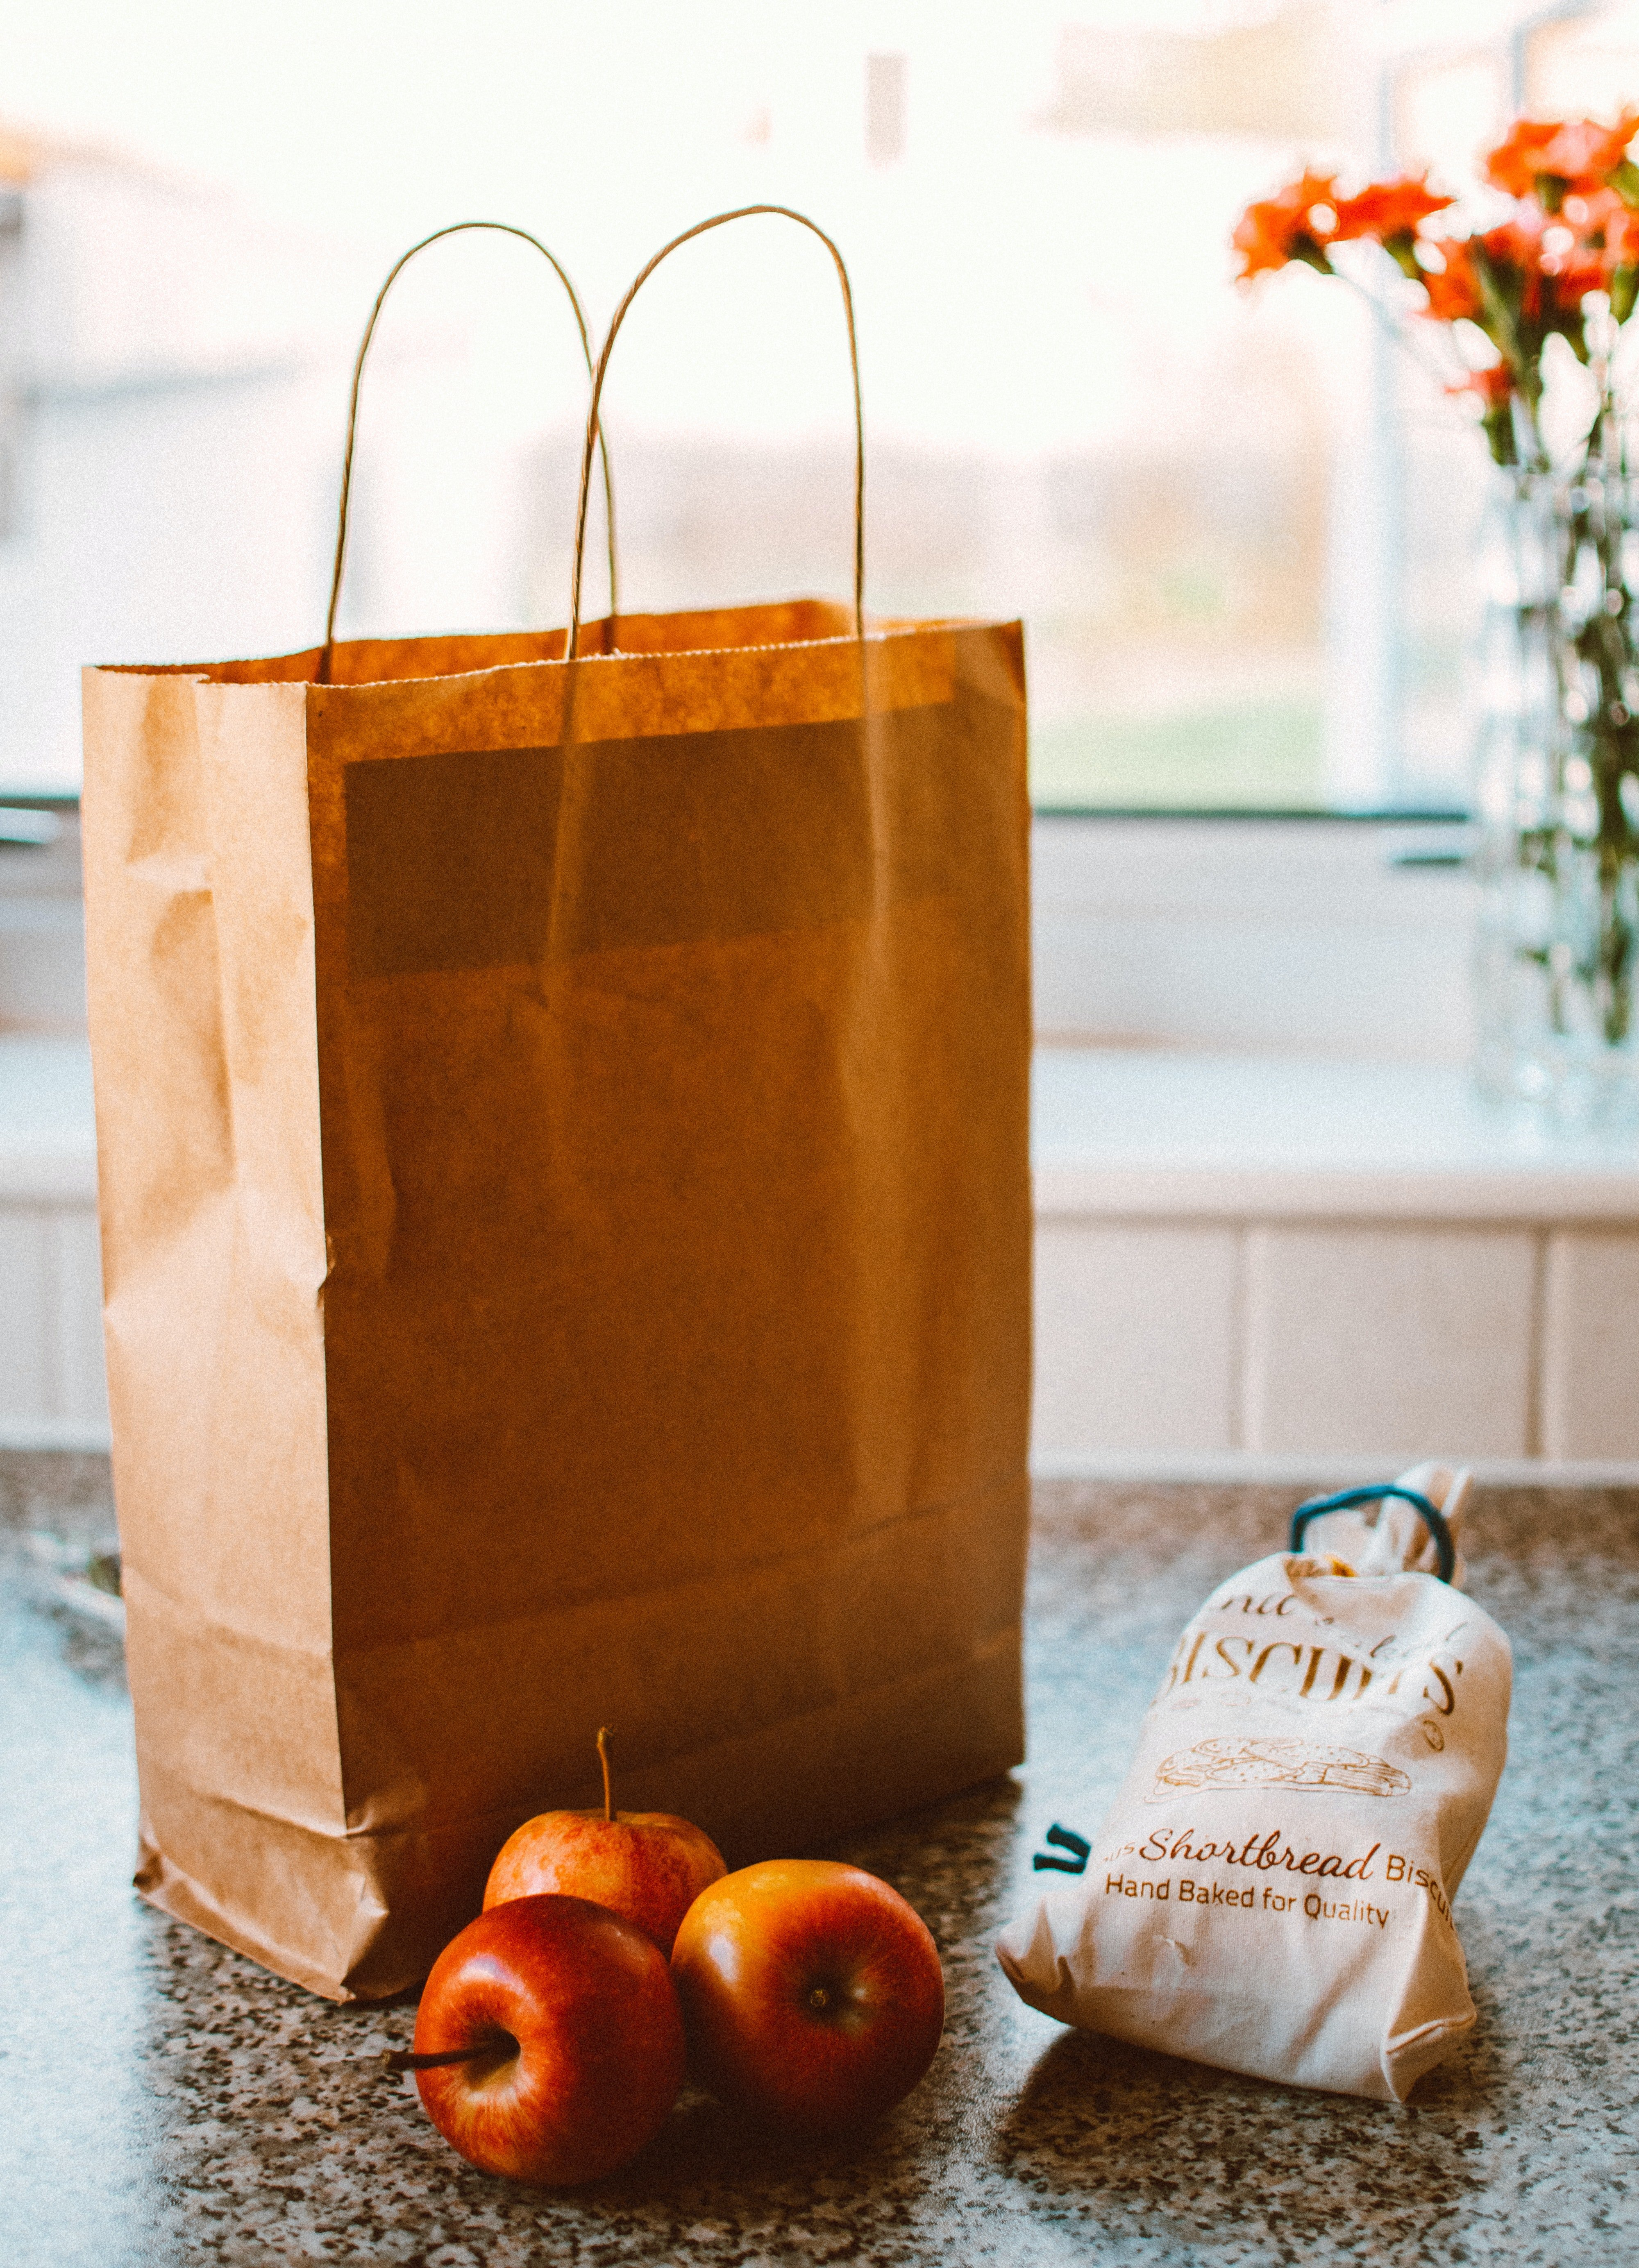 He was unpacking the groceries when we got back at him—poor bastard | Source: Pexels